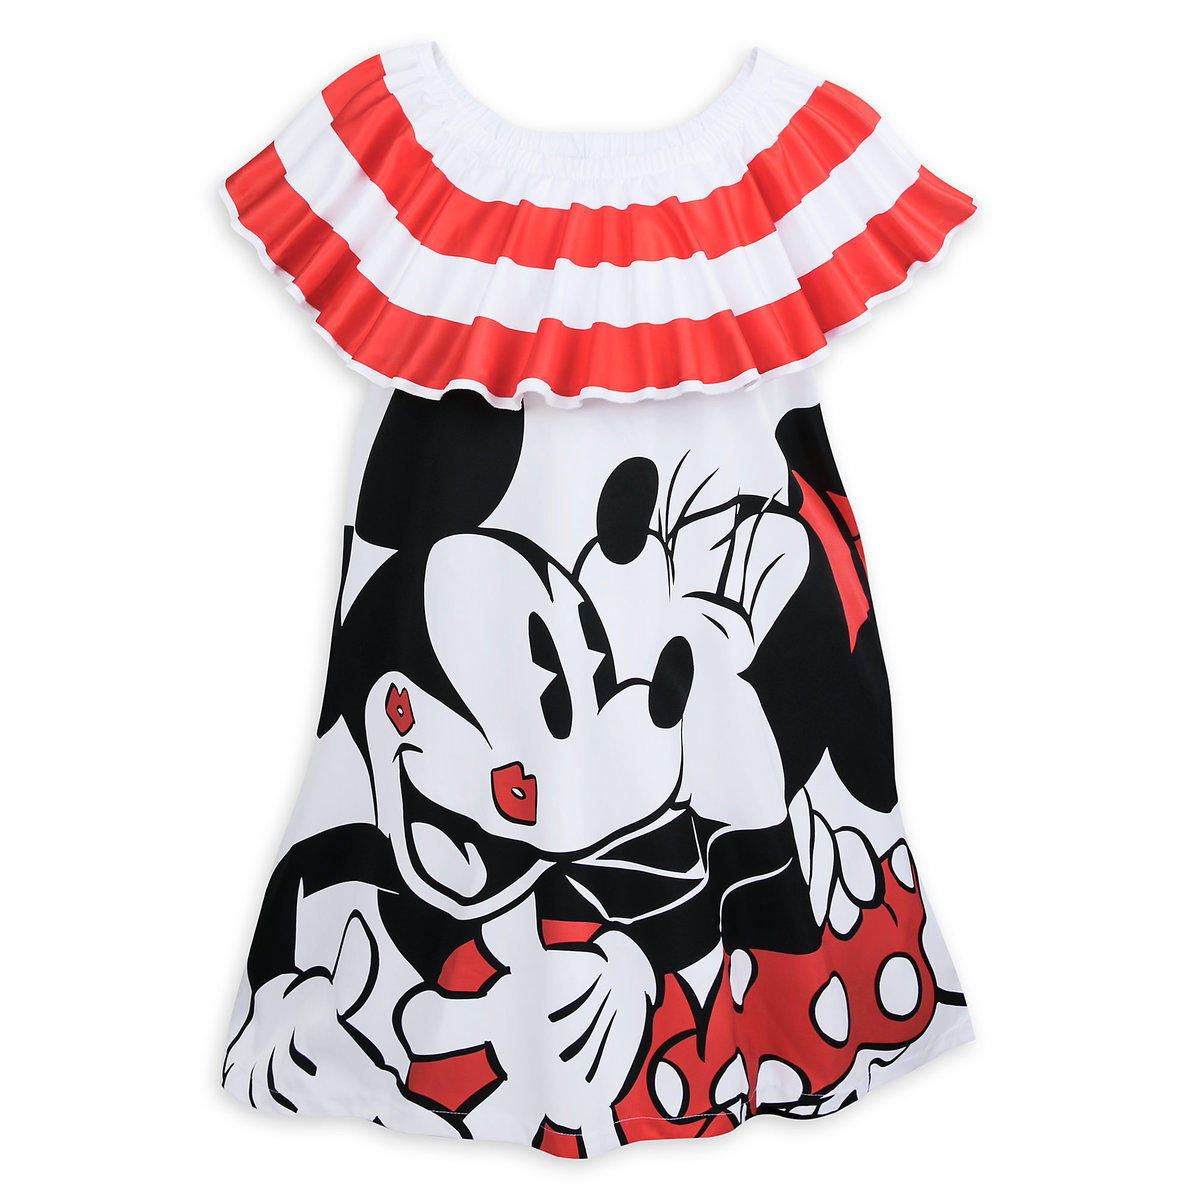 8e07914a Product Image of Mickey Mouse and Minnie Mouse Off-the-Shoulder Dress for  Women